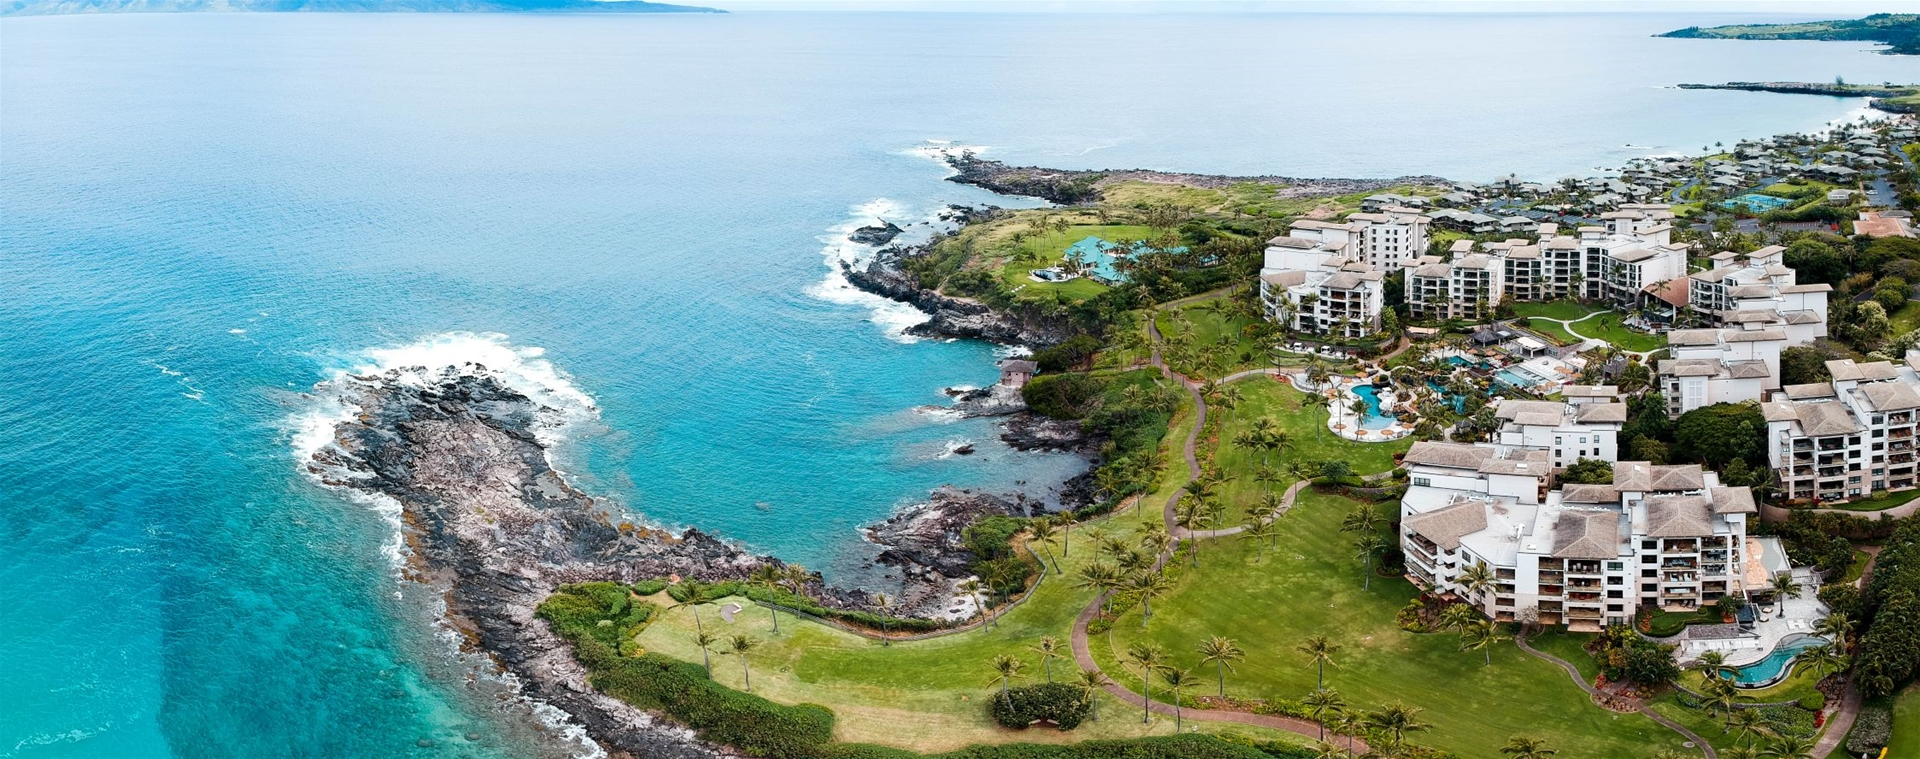 Luxurious Destinations Residences located at the Montage at Kapalua Bay